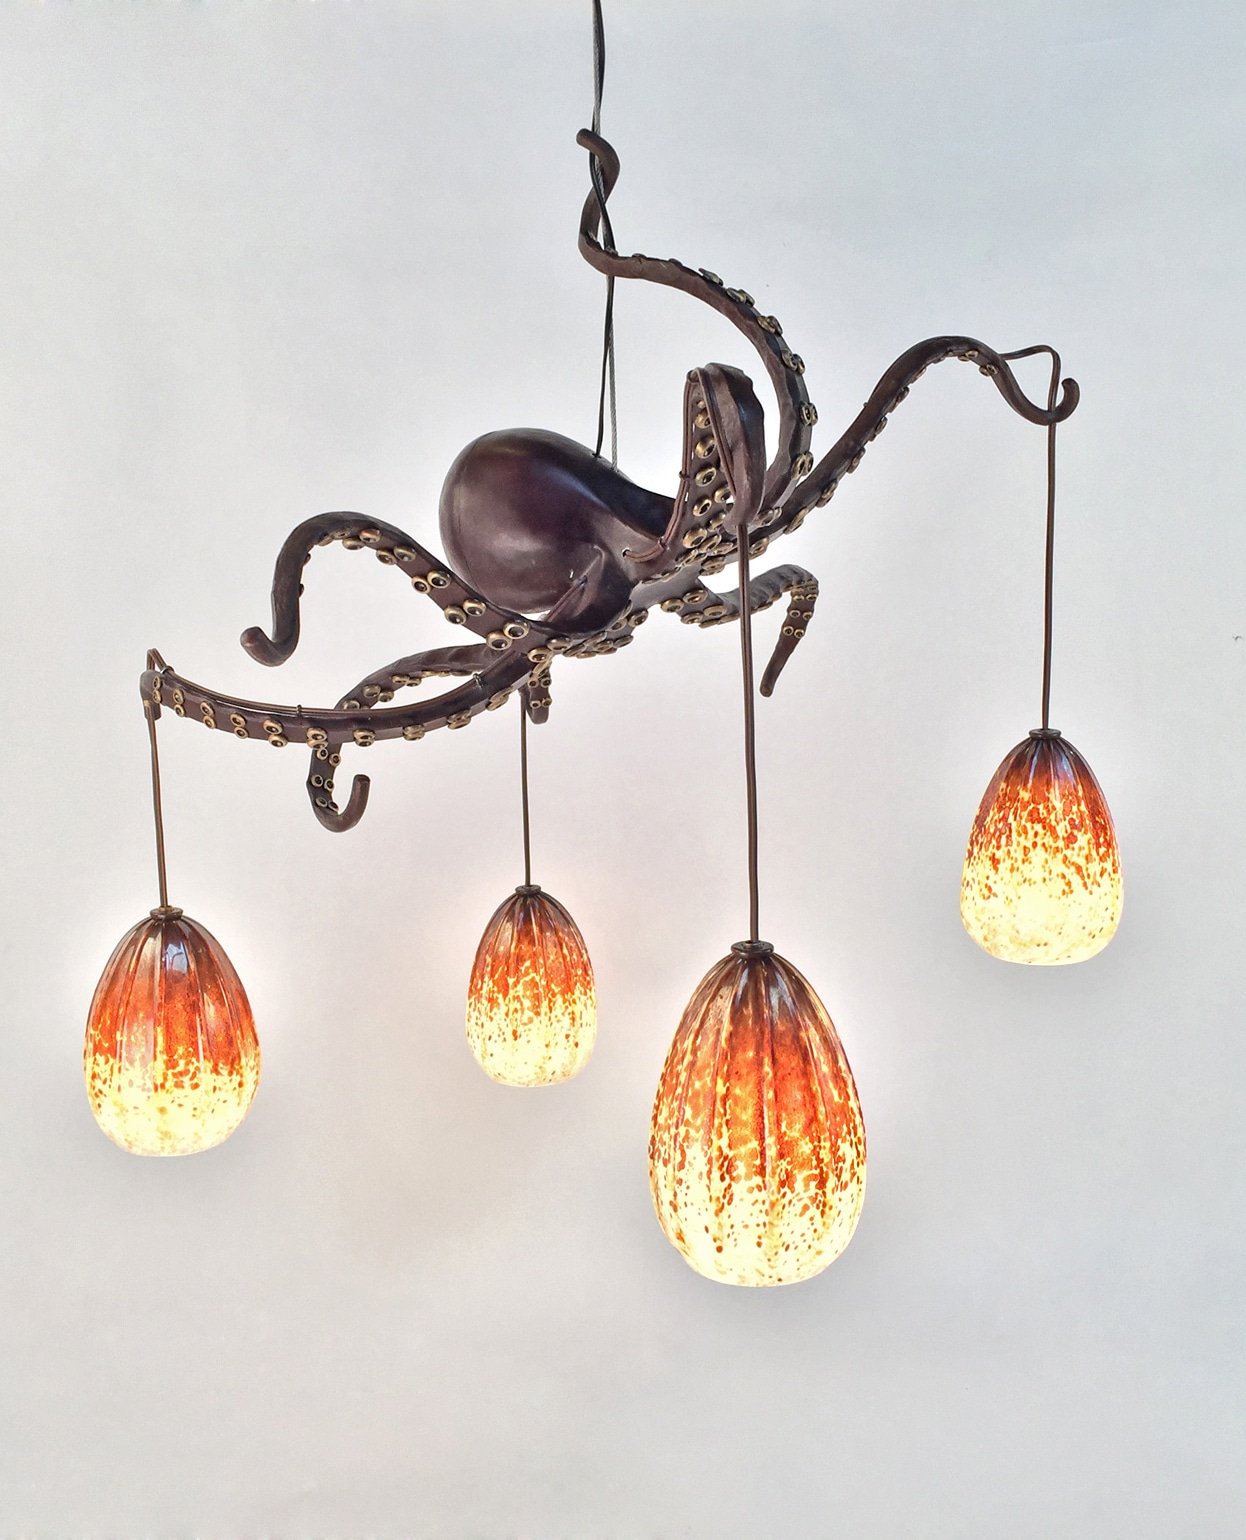 Octopus chandelier mini me daniel hopper design - Chandelier ceiling lamp ...